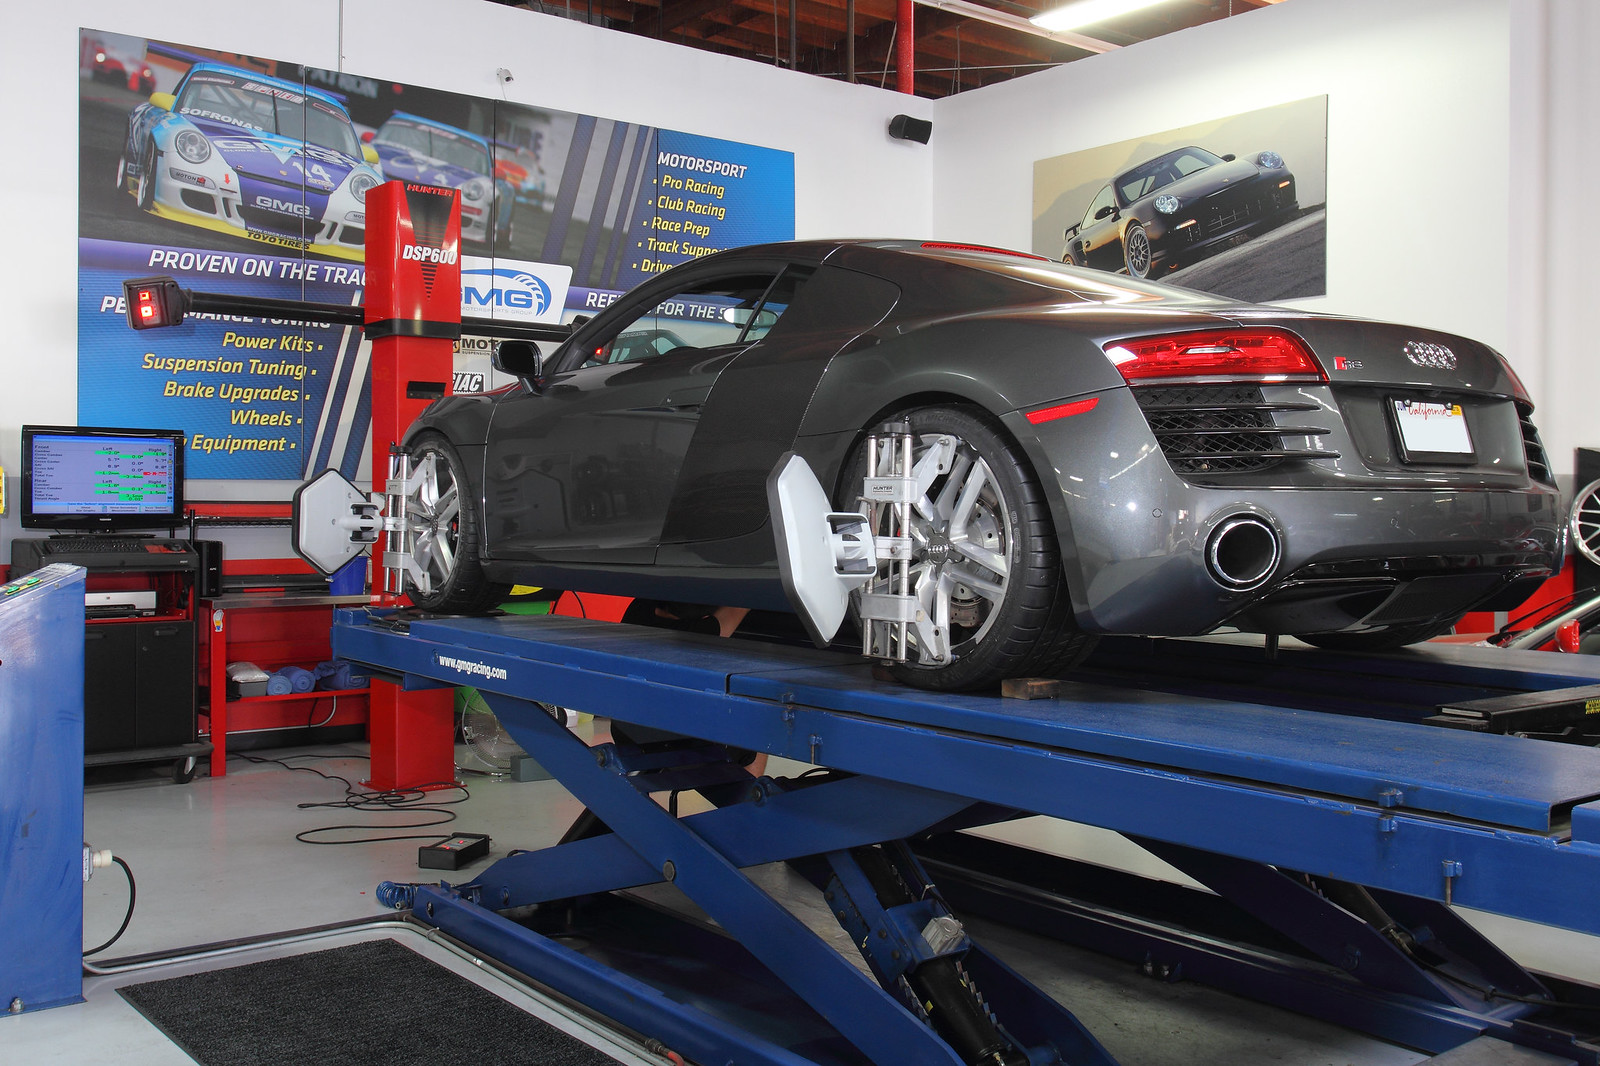 Audi R V At GMG Racing For Scheduled Maintenance Service - Audi car maintenance costs